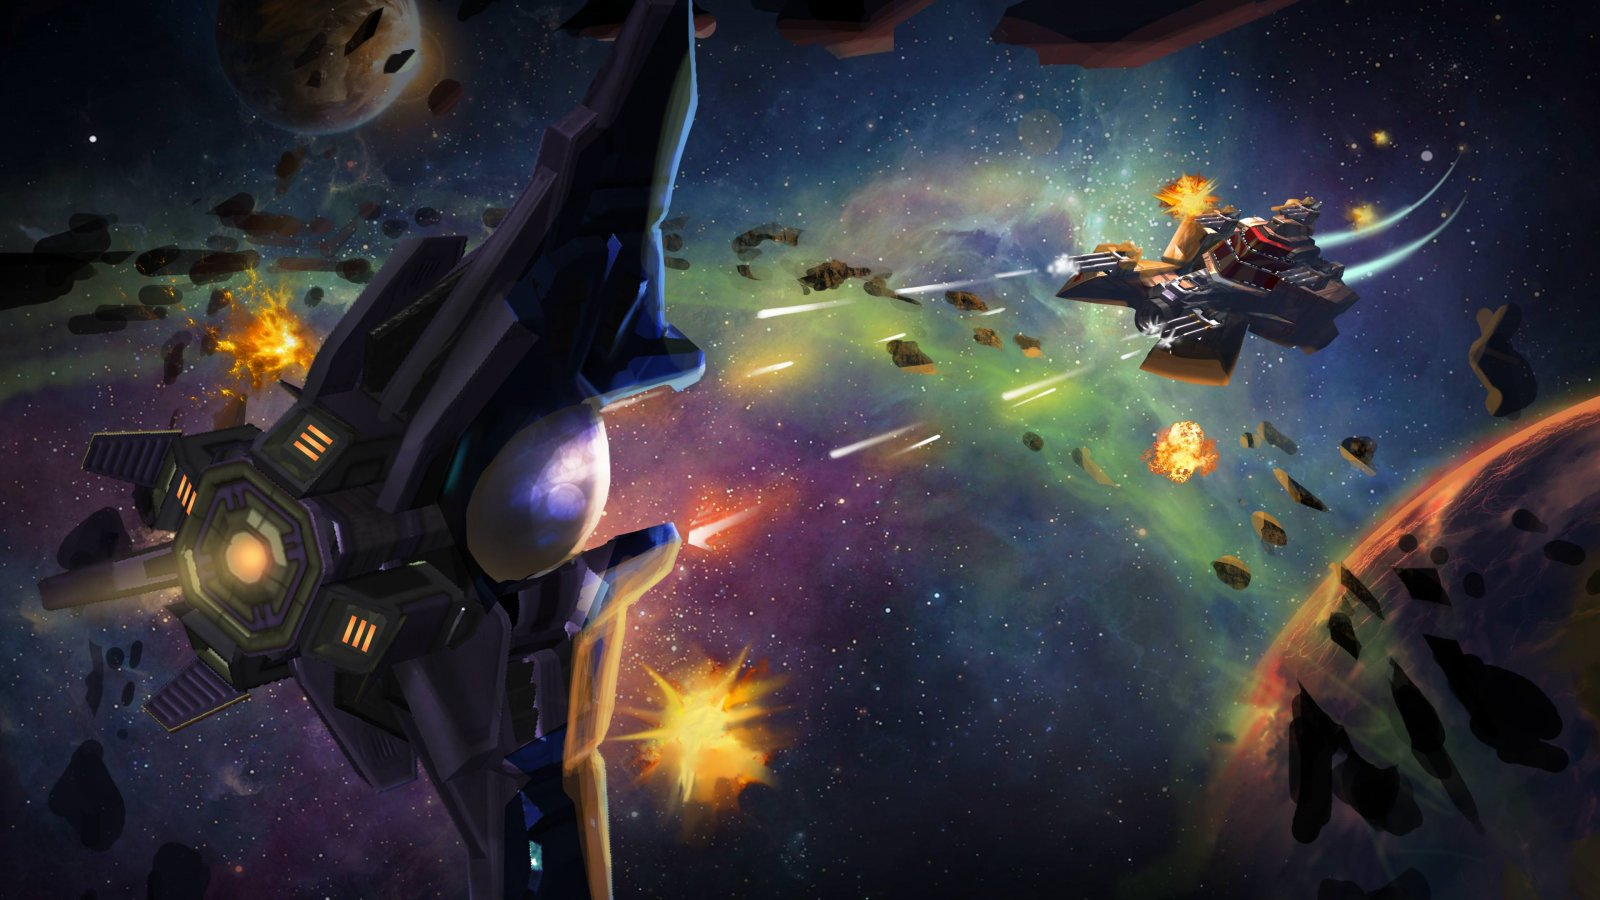 Scourge of the Scryve — Star Control: Origins review – GAMING TREND